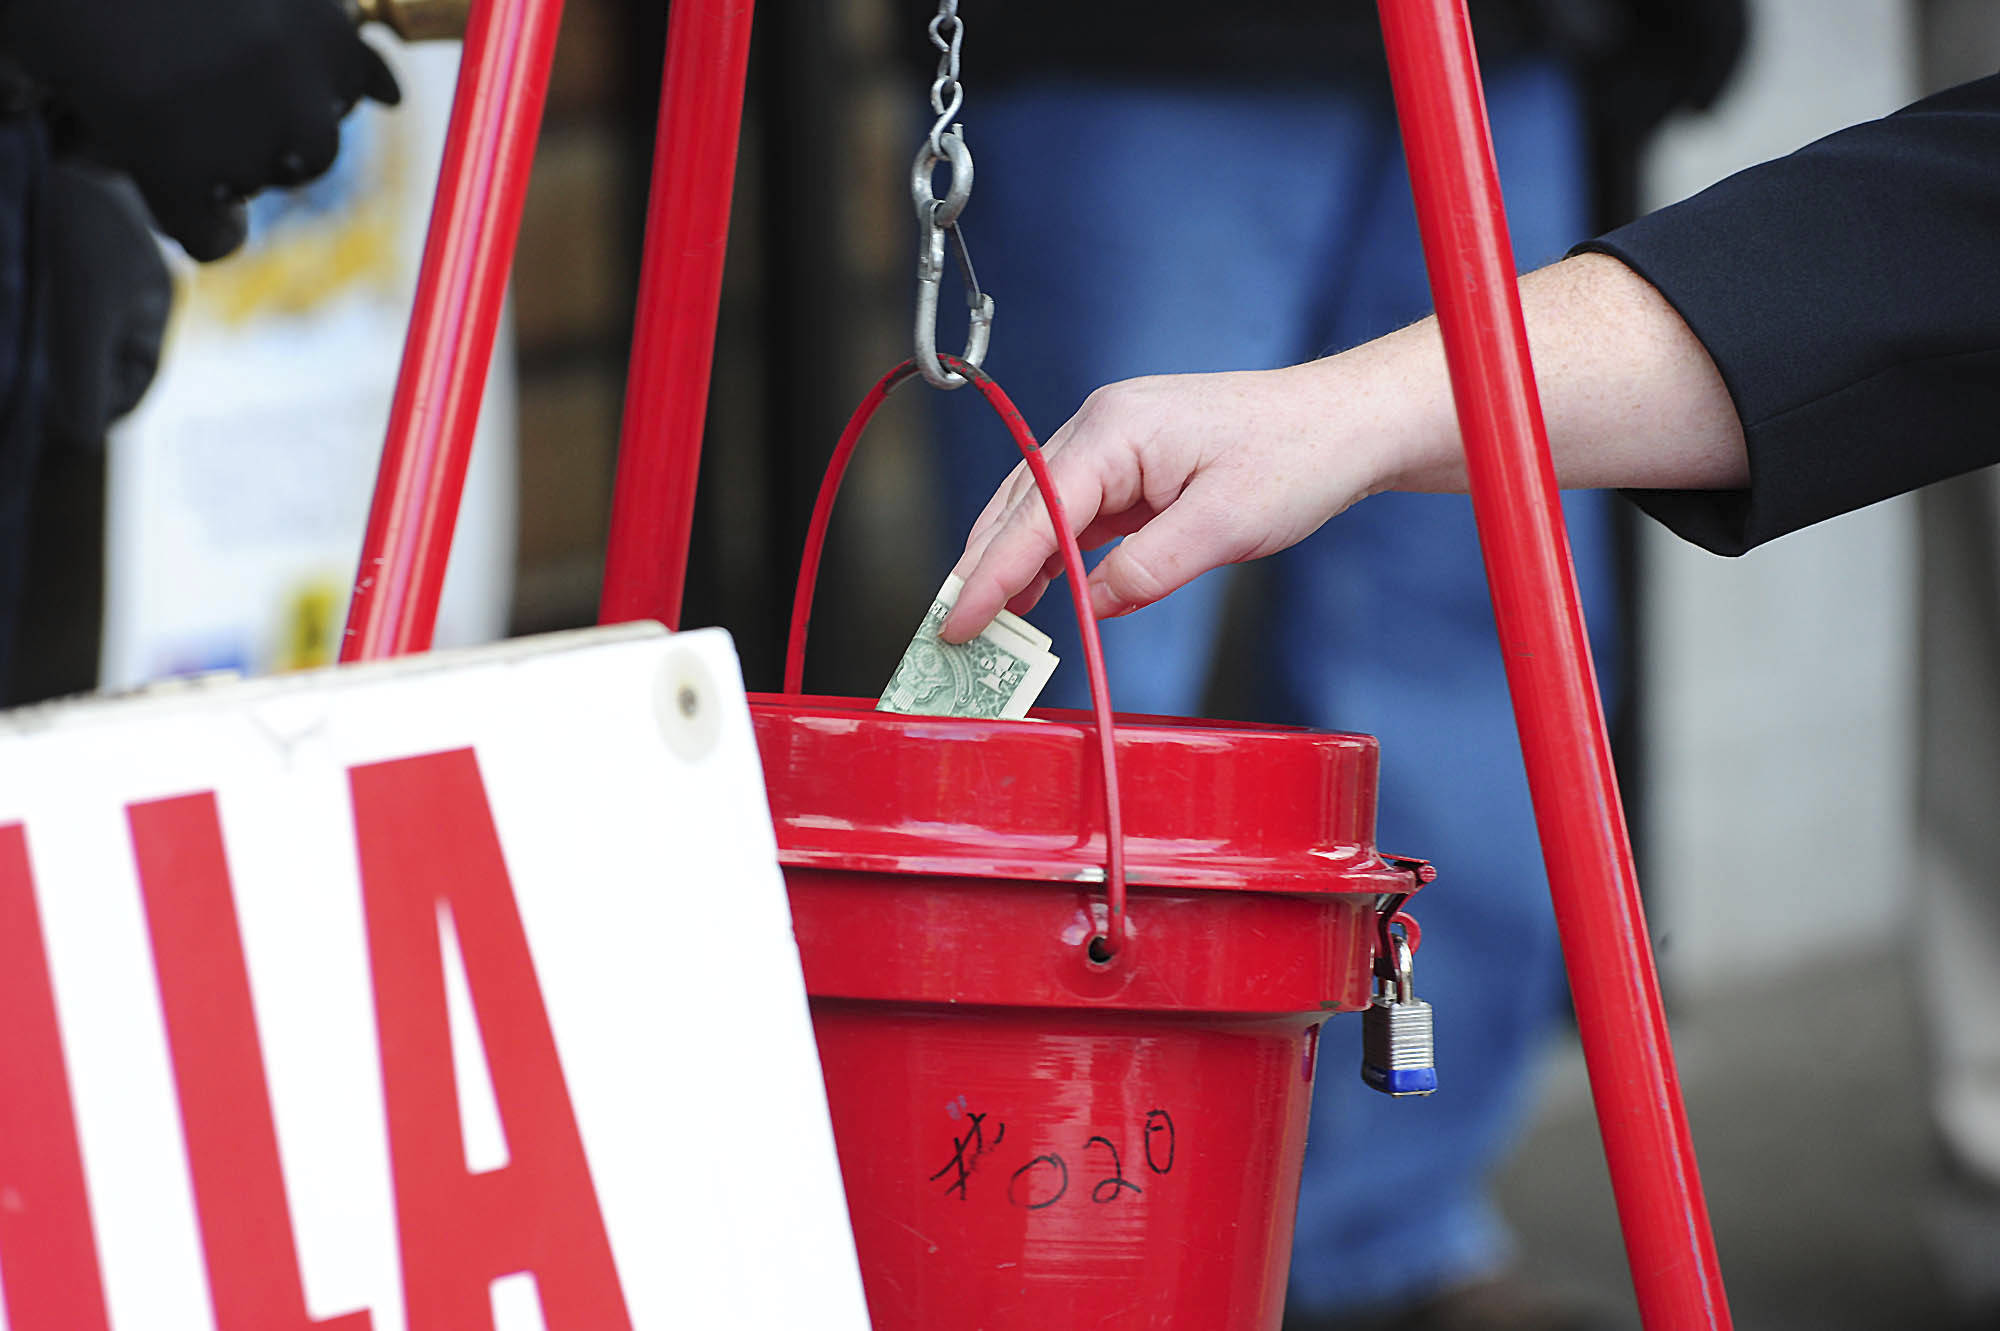 Donations, volunteers needed: Salvation Army in Pa. is falling short of Christmas campaign fundraising goals